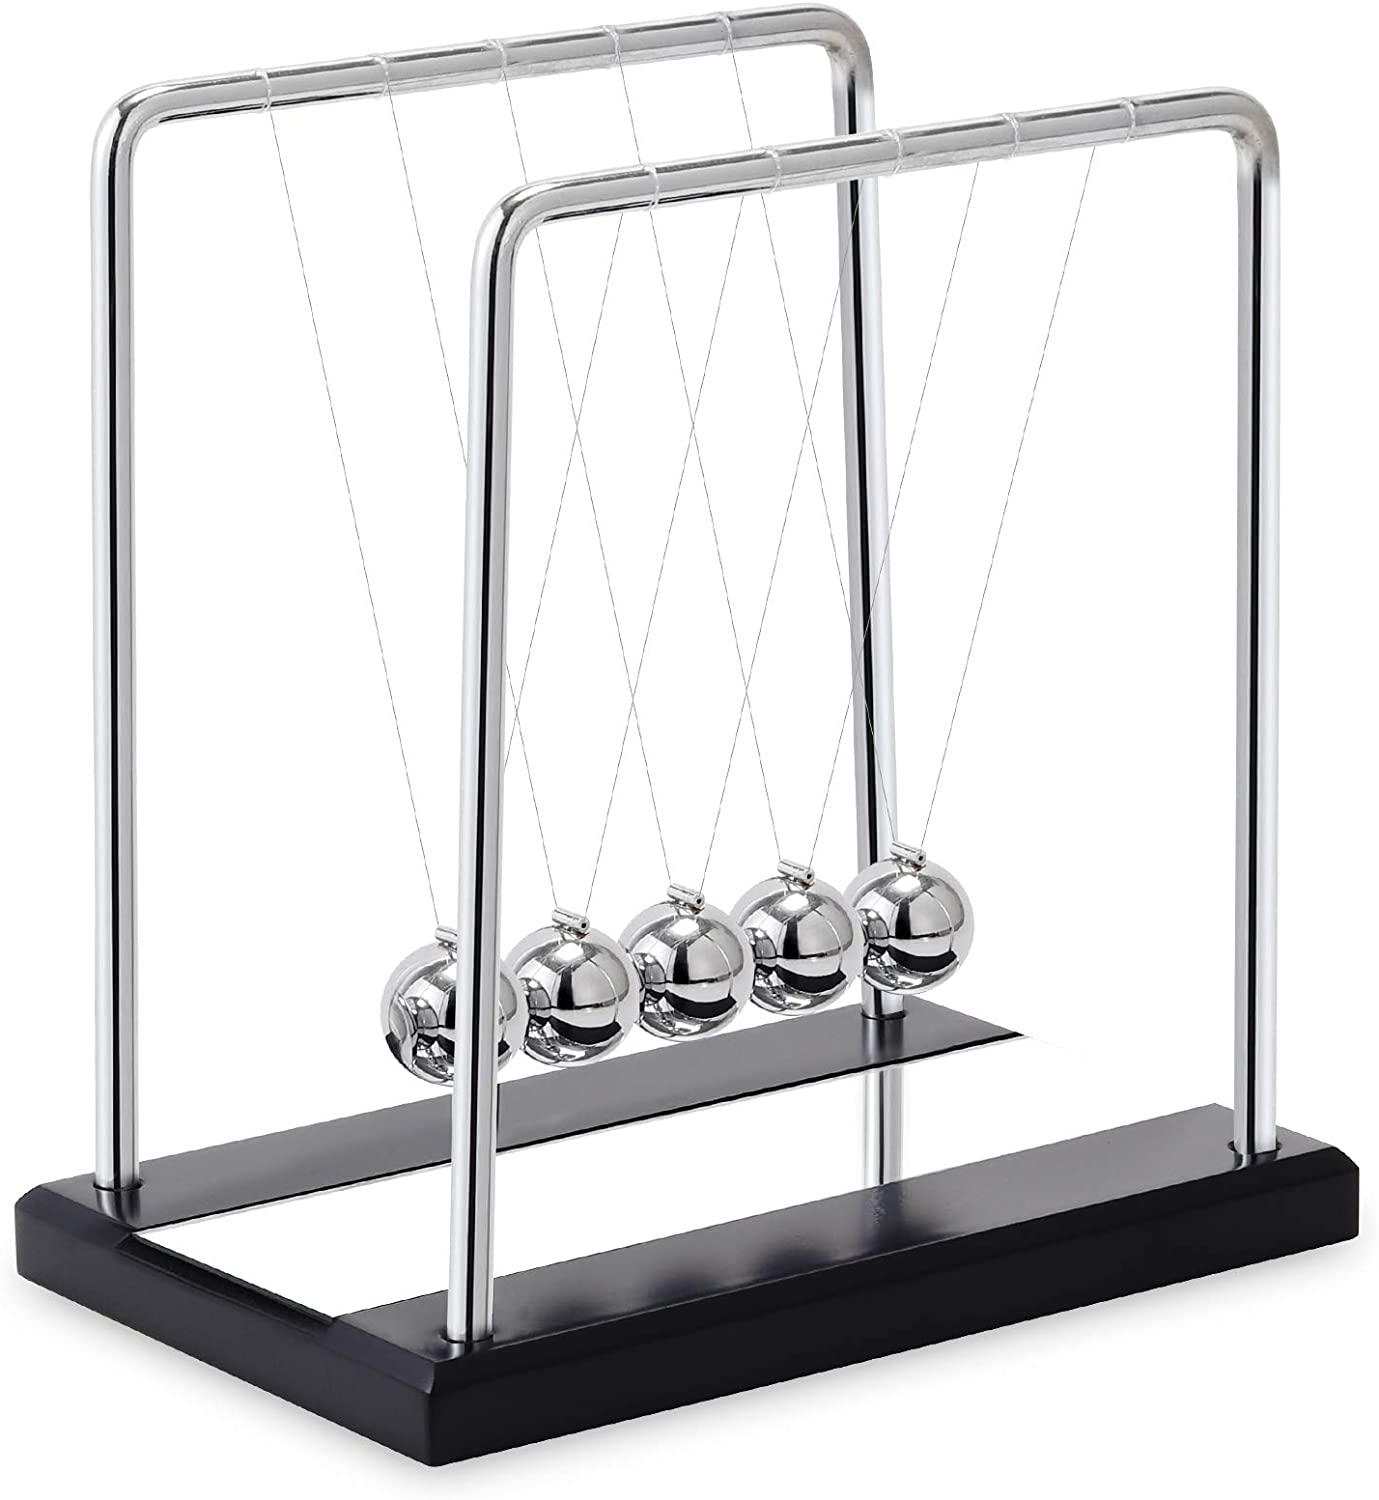 AXINMIAO Newtons Cradle Balance Balls with Mirror Black Wooden Base Fun Science Physics Learning Desk Toys Fun Gadget 5 Pendulum Balls for Office and Home Decoration - Large Mirror Black